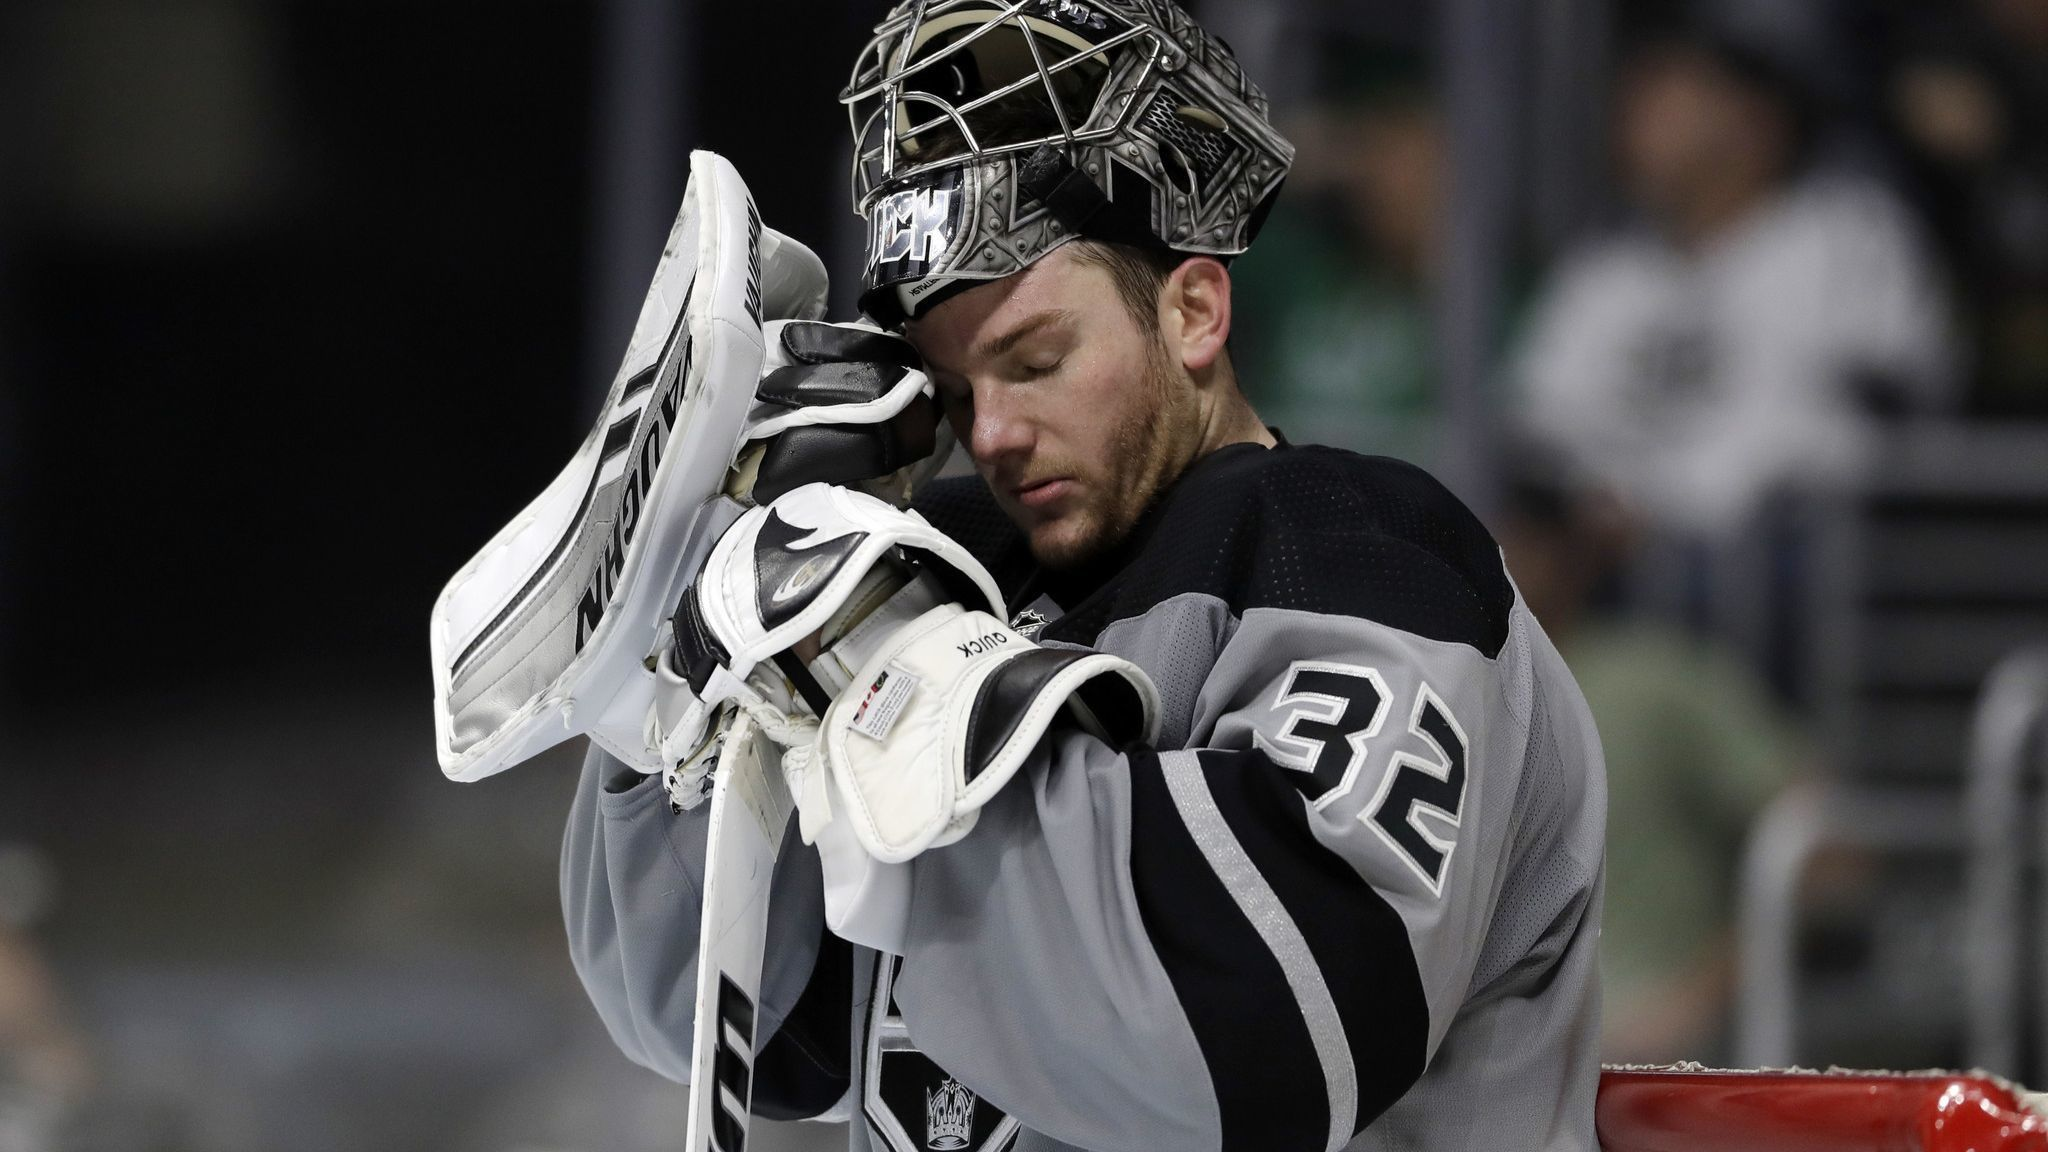 Kings let another game slip from grasp, this time 4-3 to Panthers